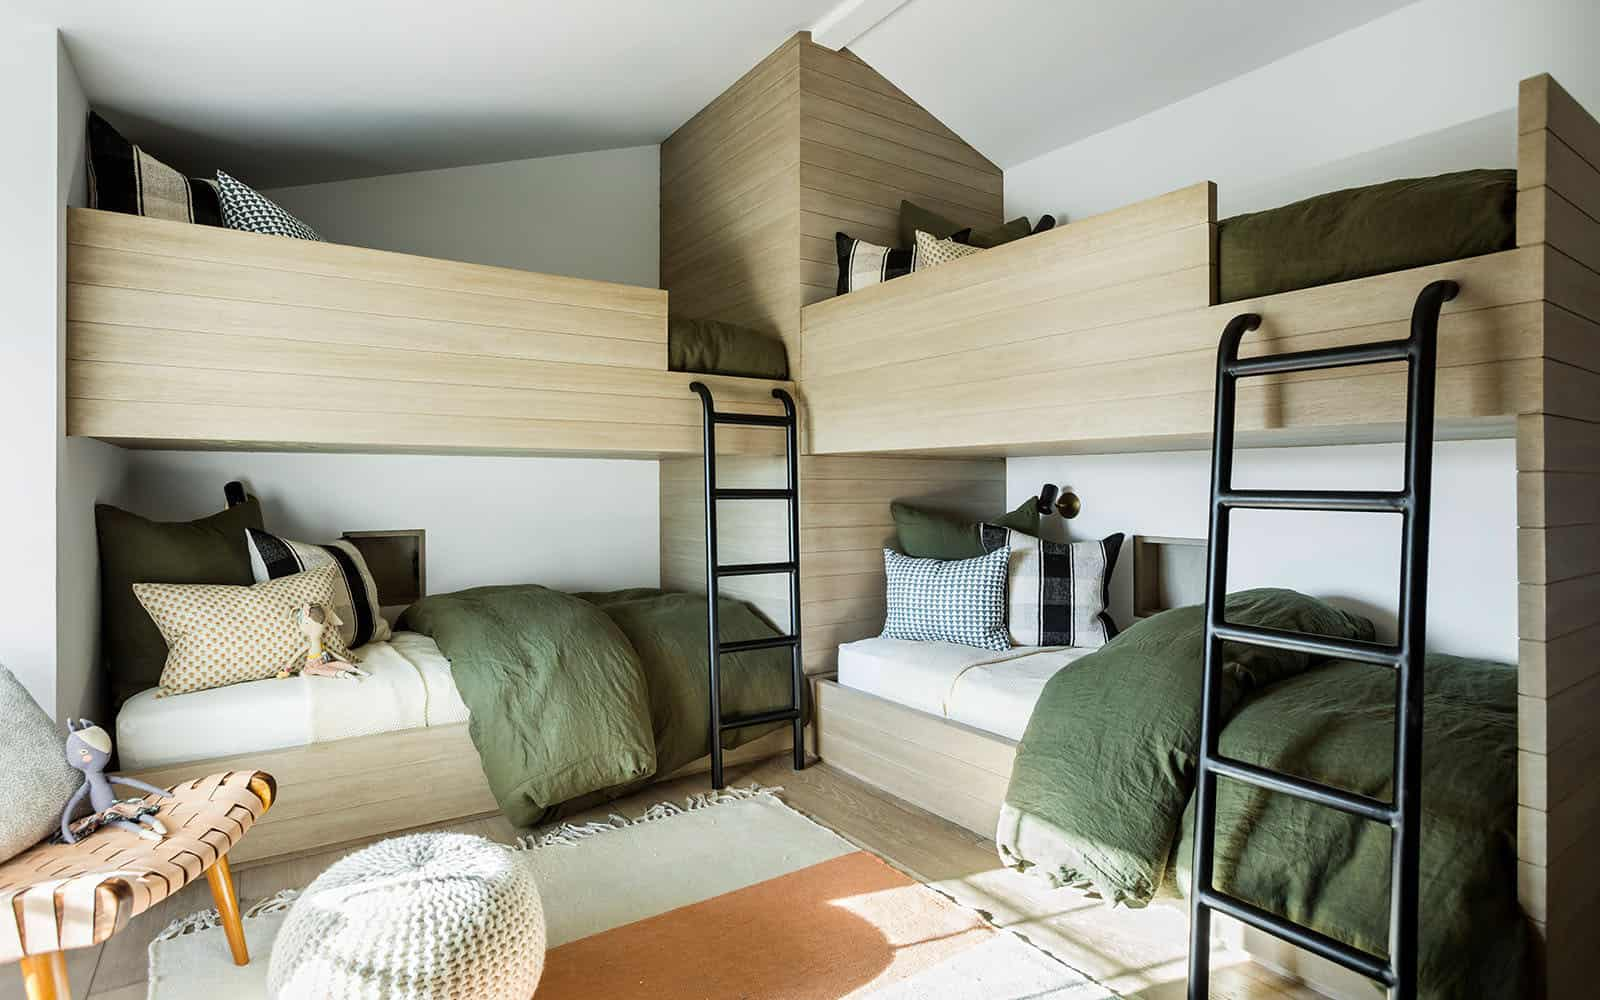 santa-barbara-country-style-bunk-bedroom